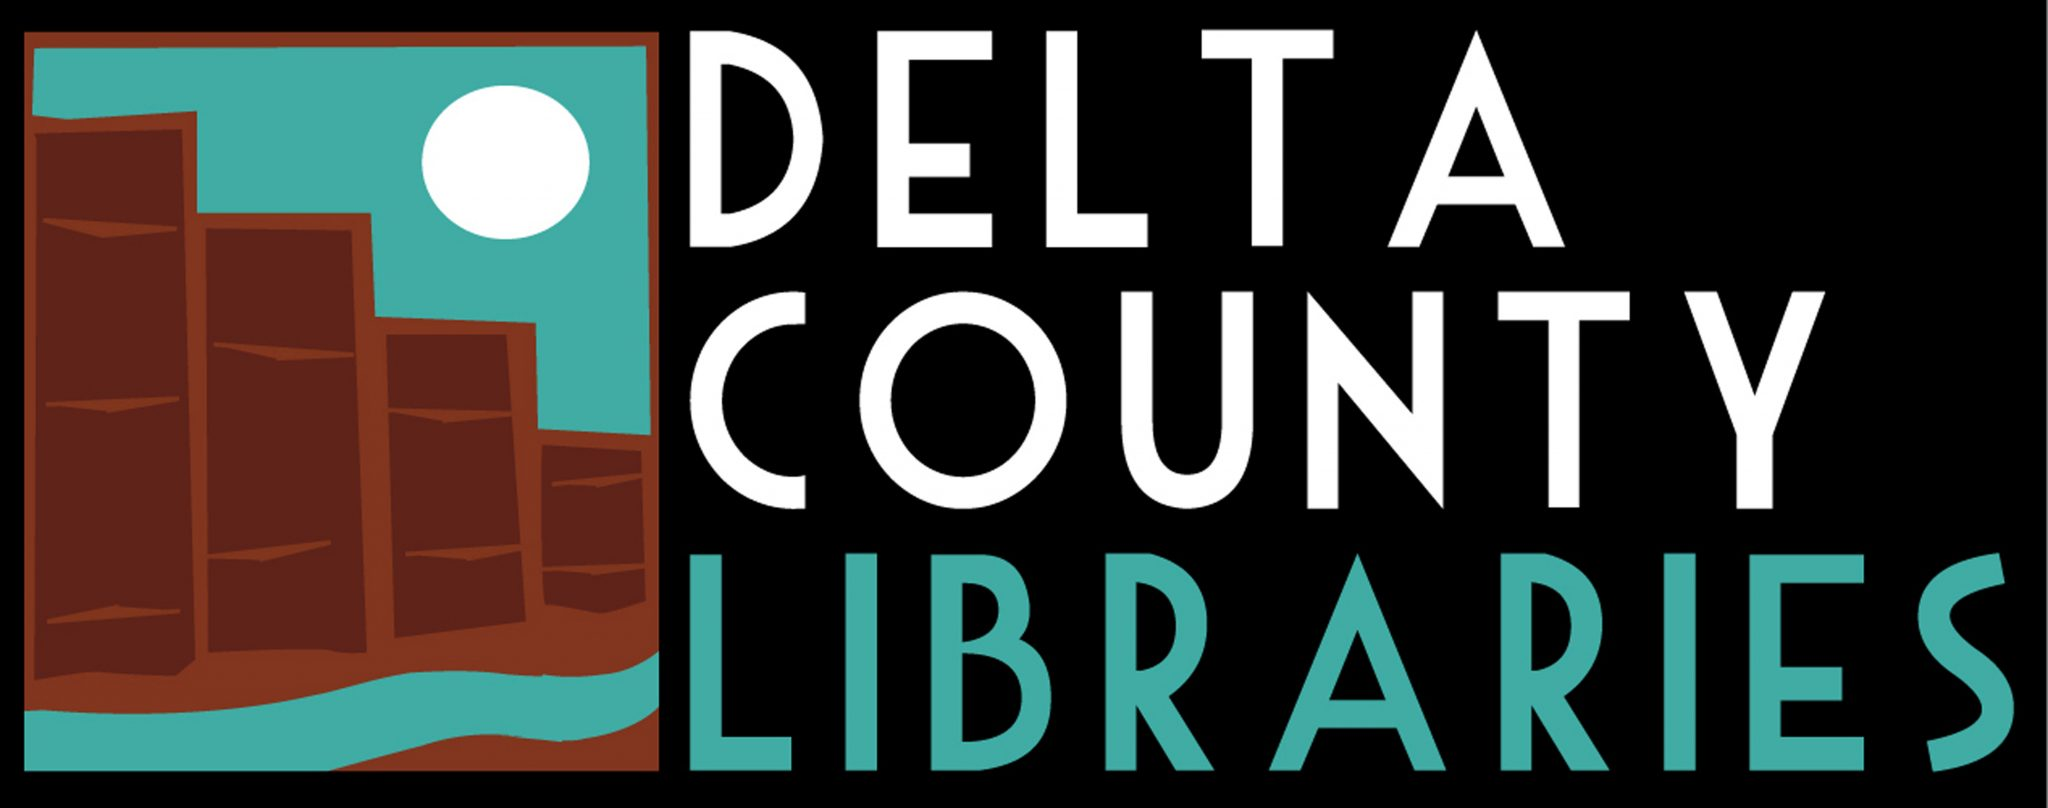 Do Research - Delta County Libraries